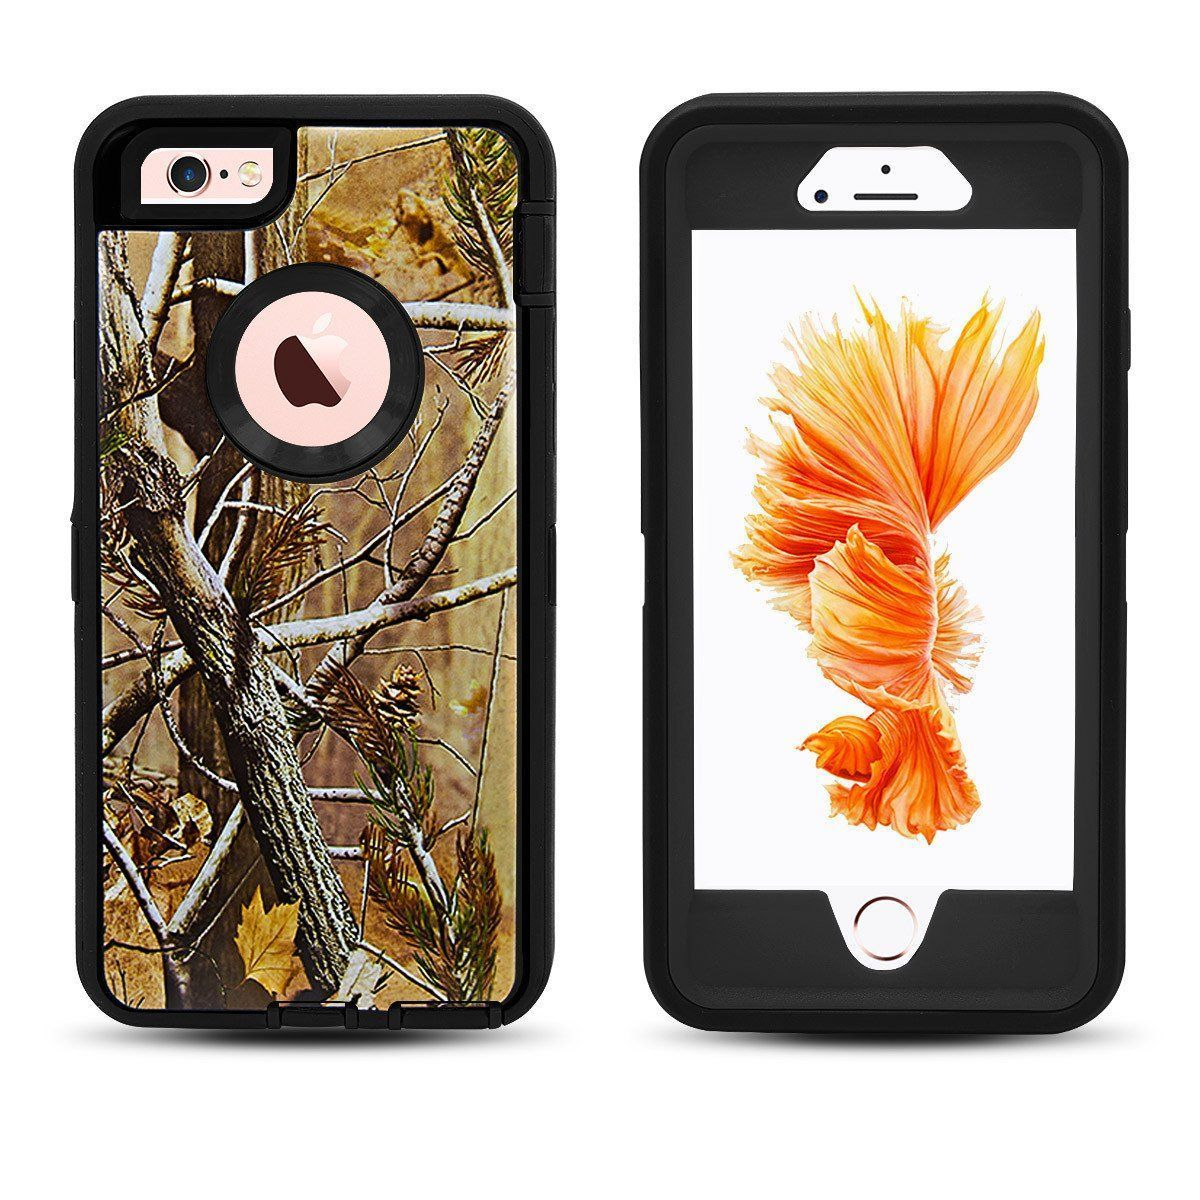 DualPro Protector Case for iPhone 6 - Camouflage Black